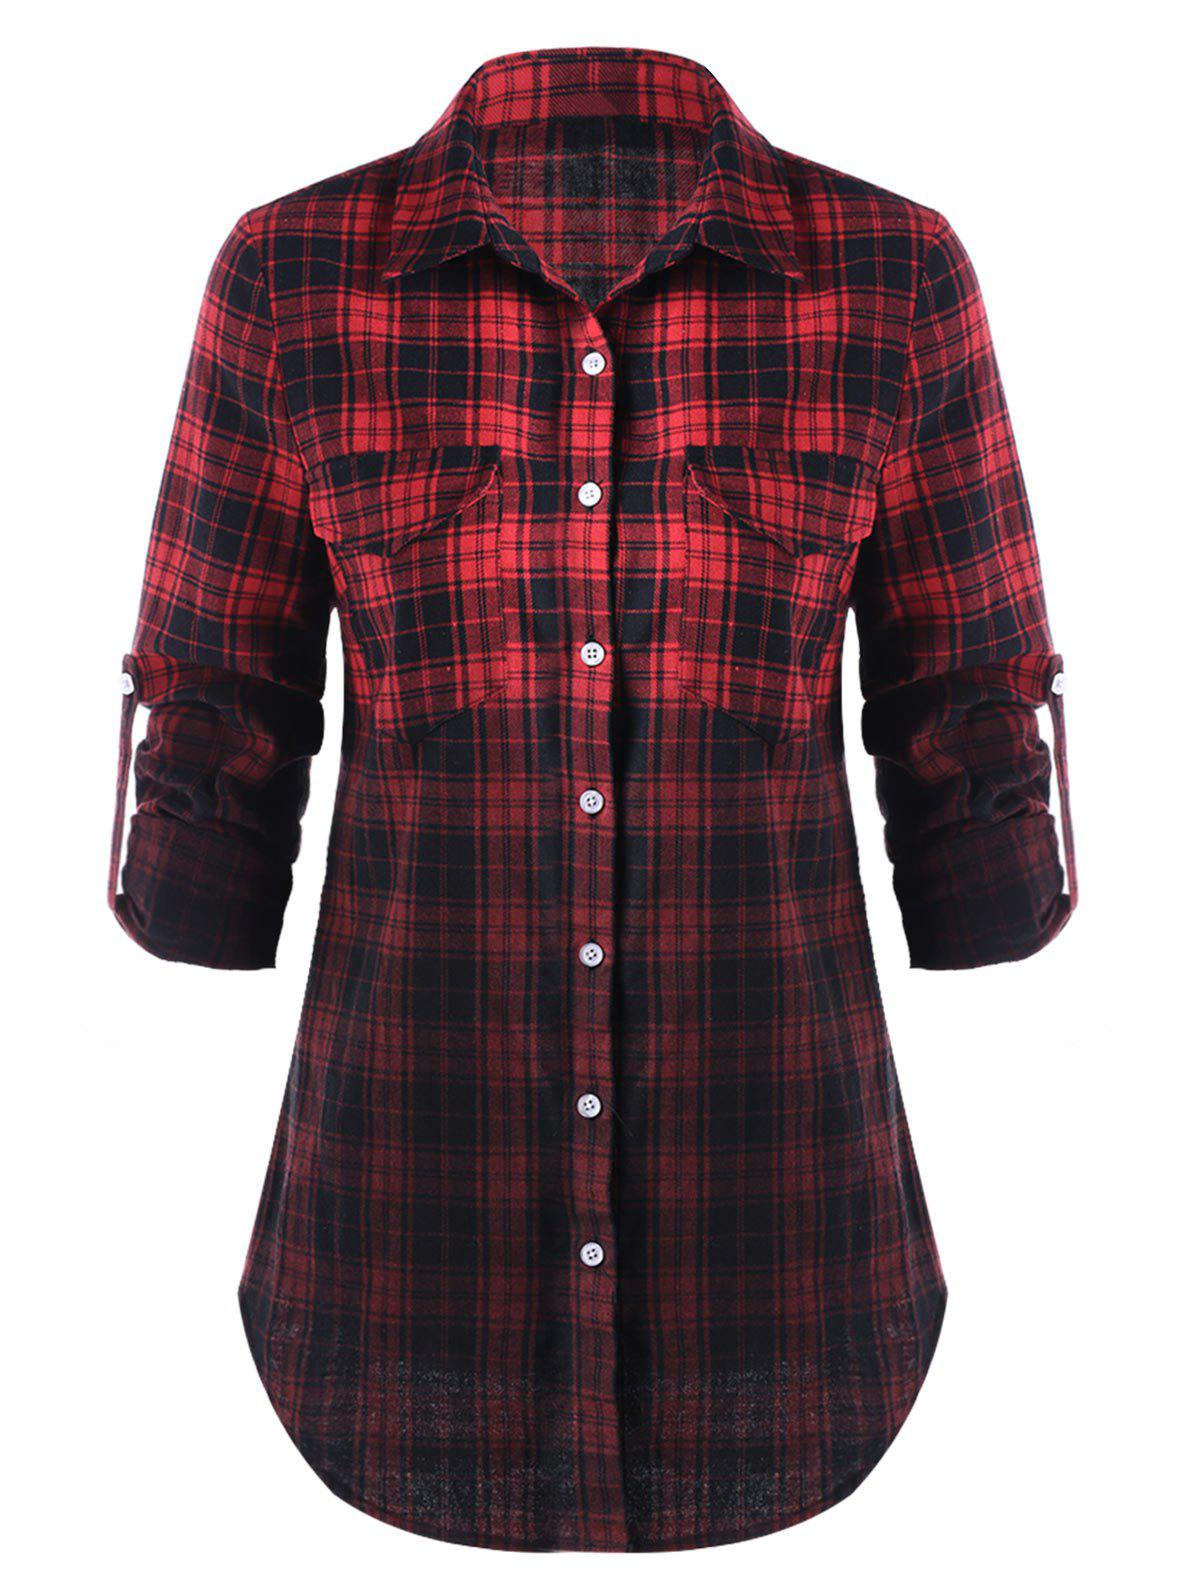 Flap Pockets Ombre Checked ShirtWOMEN<br><br>Size: XL; Color: BLACK&amp;RED; Occasion: Casual; Style: Casual; Material: Polyester,Rayon; Shirt Length: Long; Sleeve Length: Full; Collar: Shirt Collar; Pattern Type: Plaid; Embellishment: Pockets; Season: Fall,Spring; Weight: 0.3000kg; Package Contents: 1 x Shirt;